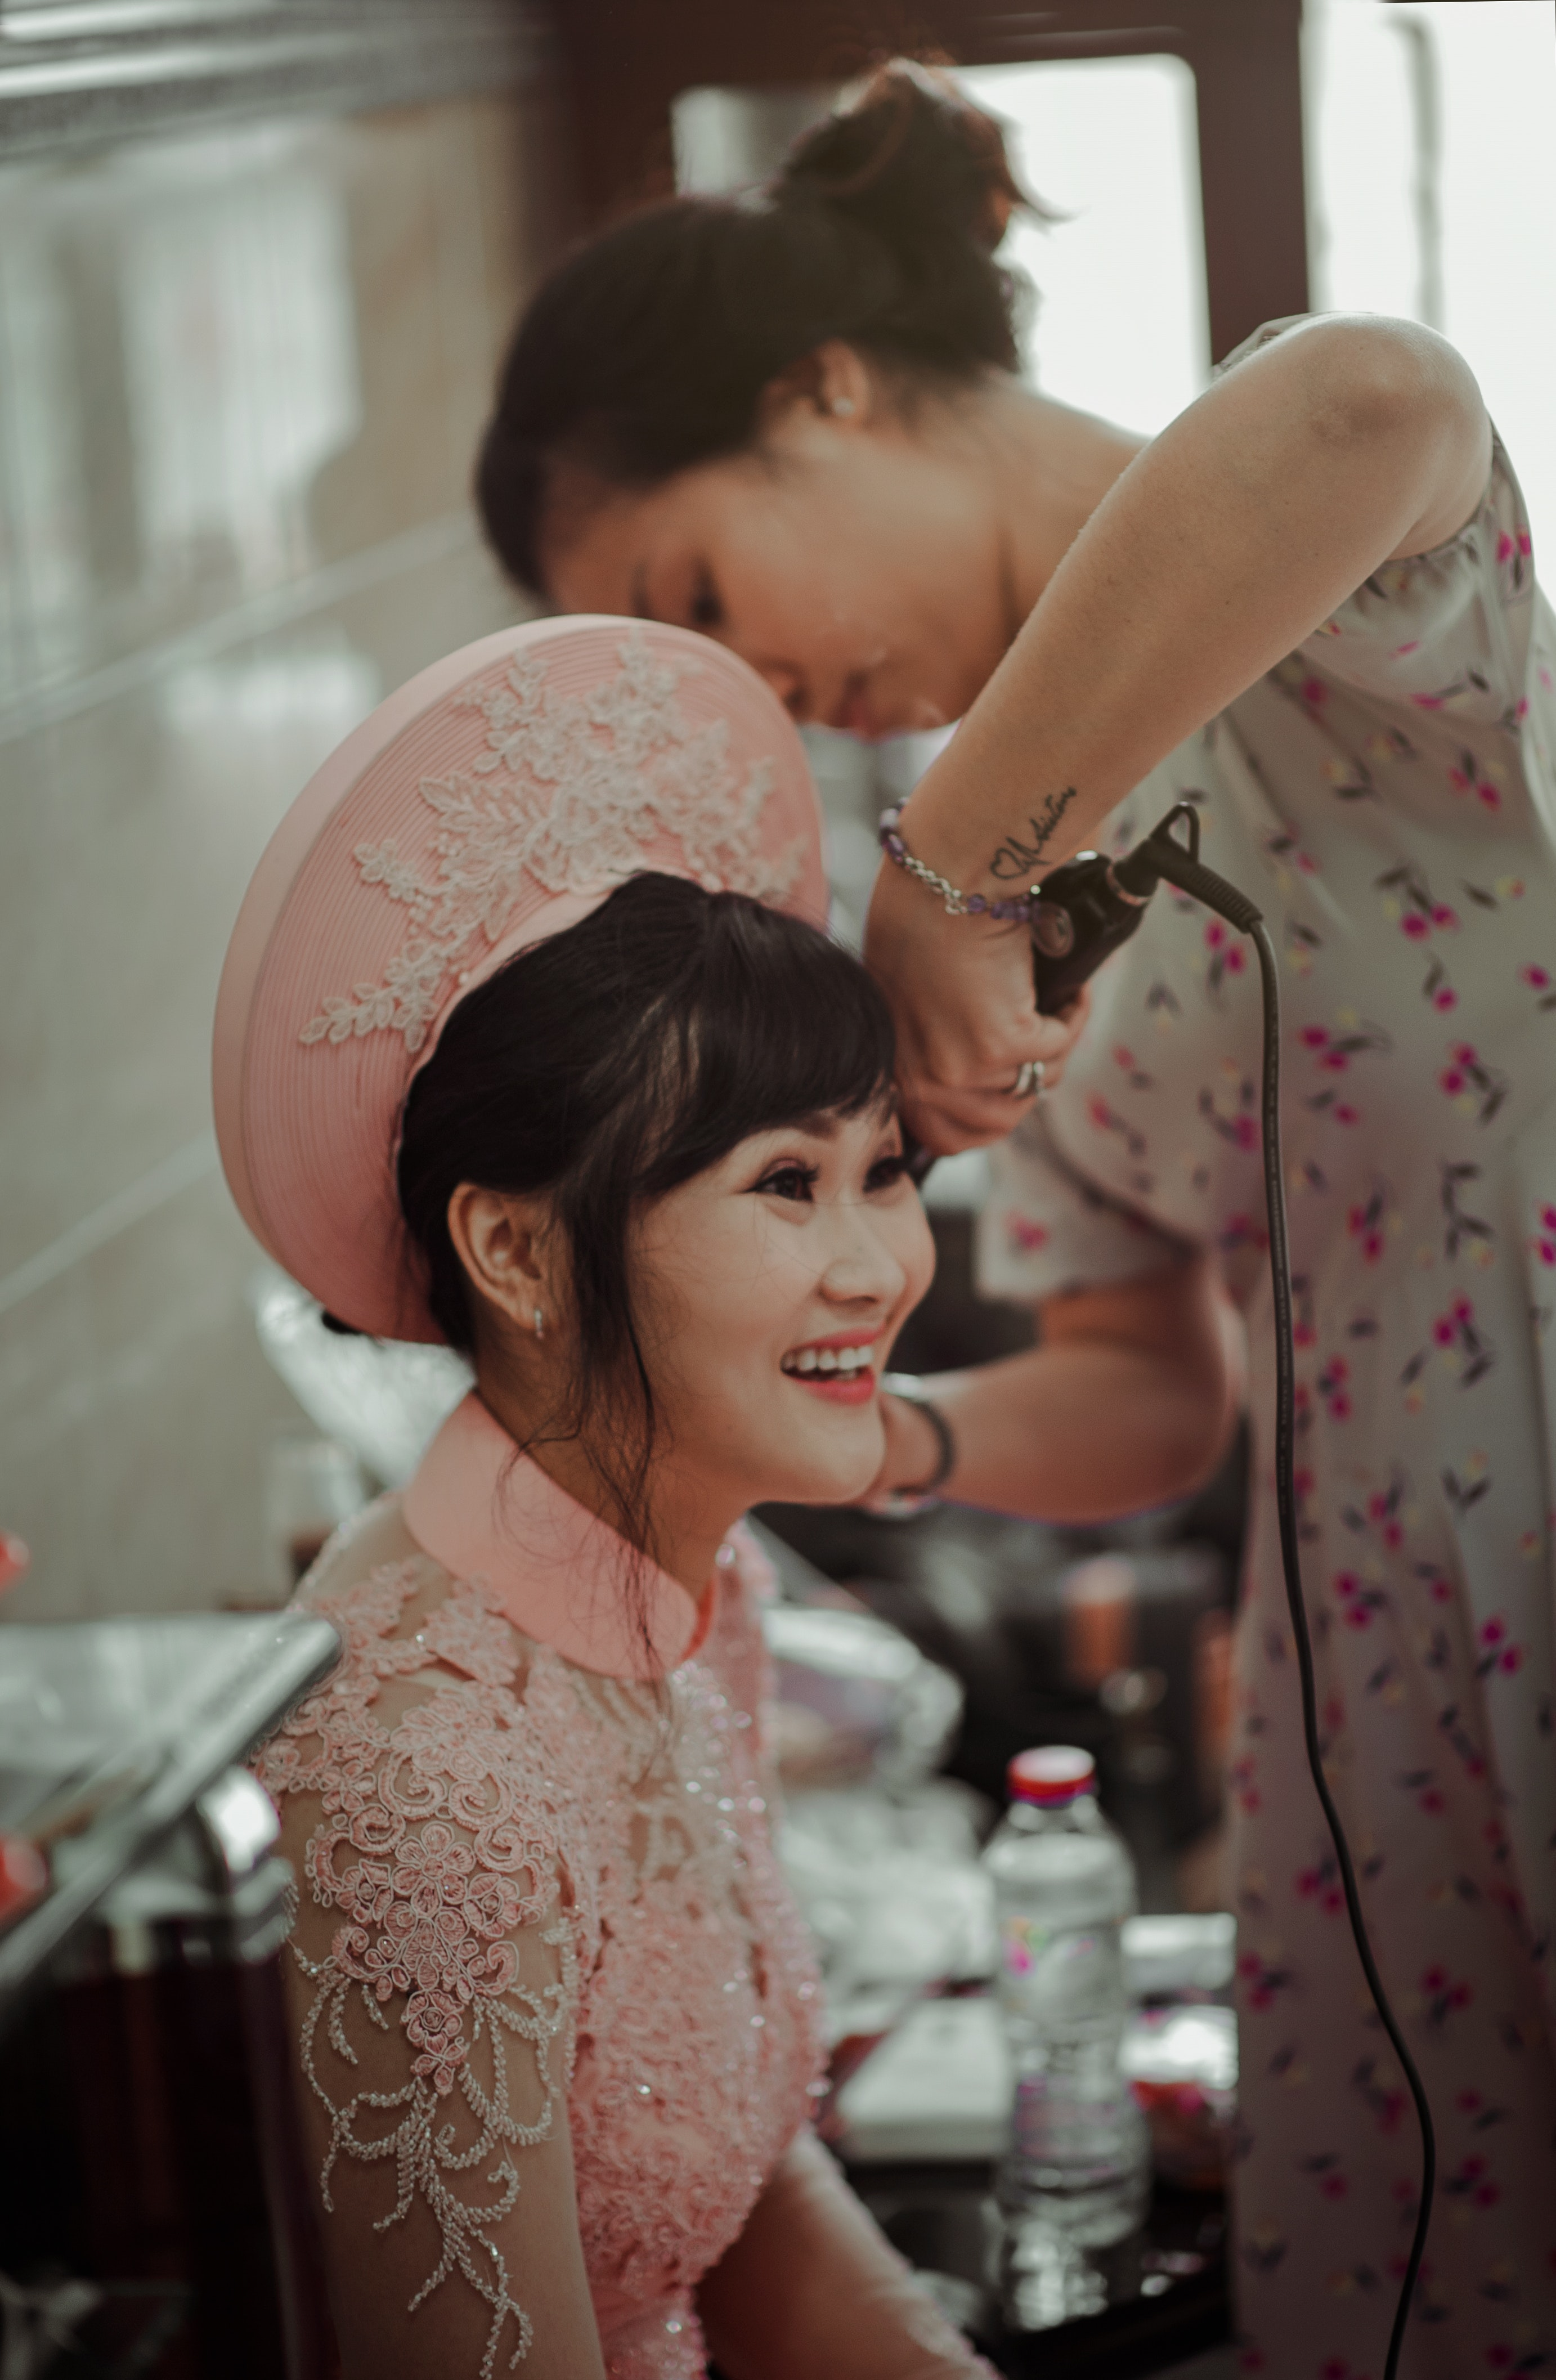 Woman in Pink Collared Blouse Smiling While Sitting, Blur, Photoshoot, Wedding dress, Wedding, HQ Photo